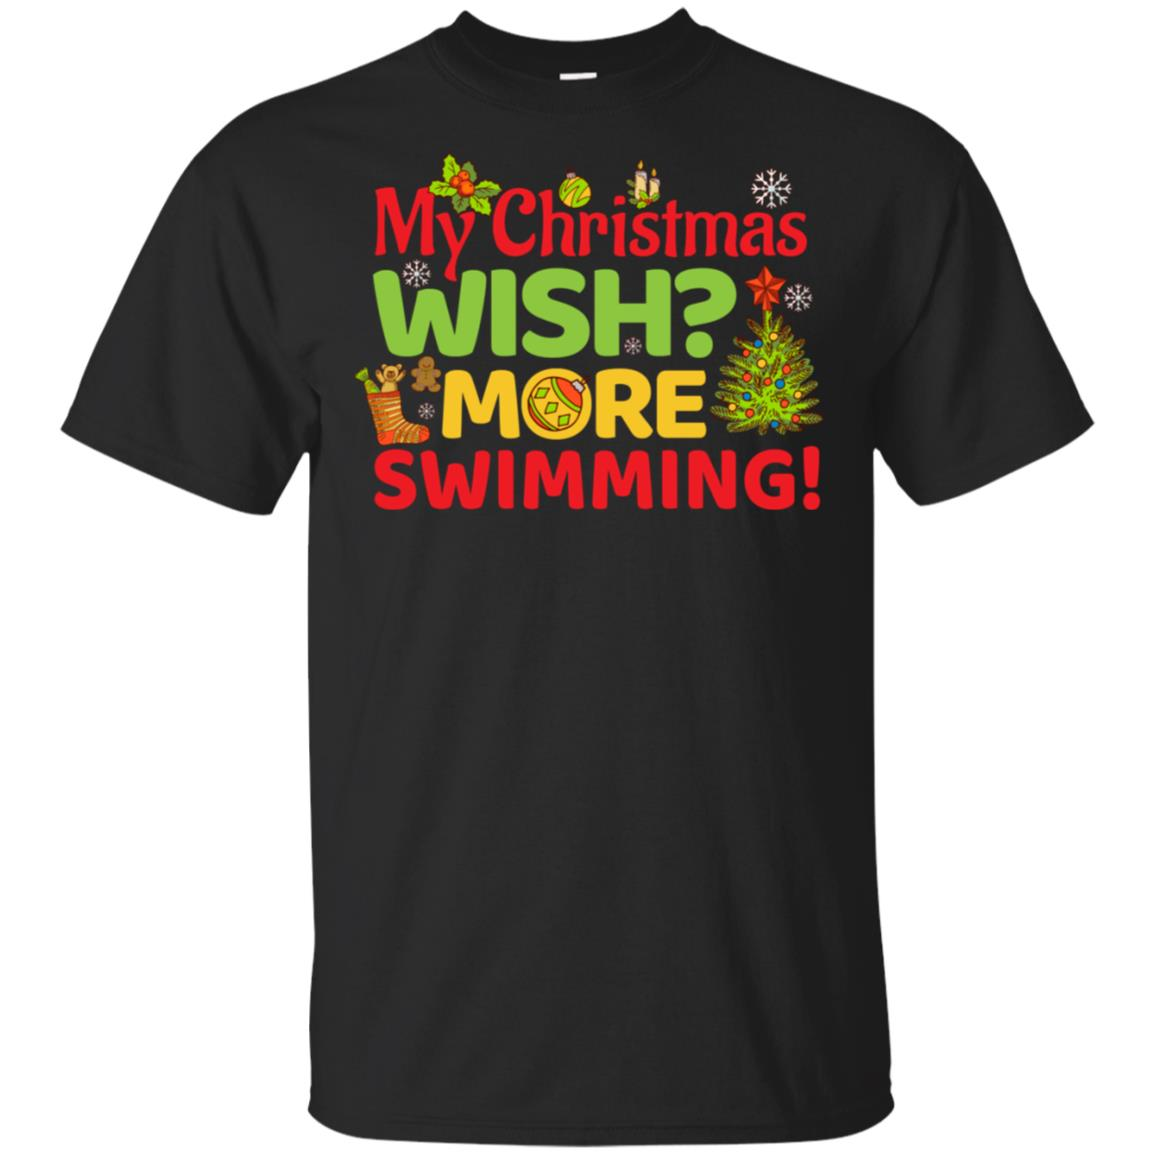 My Christmas Wish More Swimming Holiday Swimmer Gift Unisex Short Sleeve